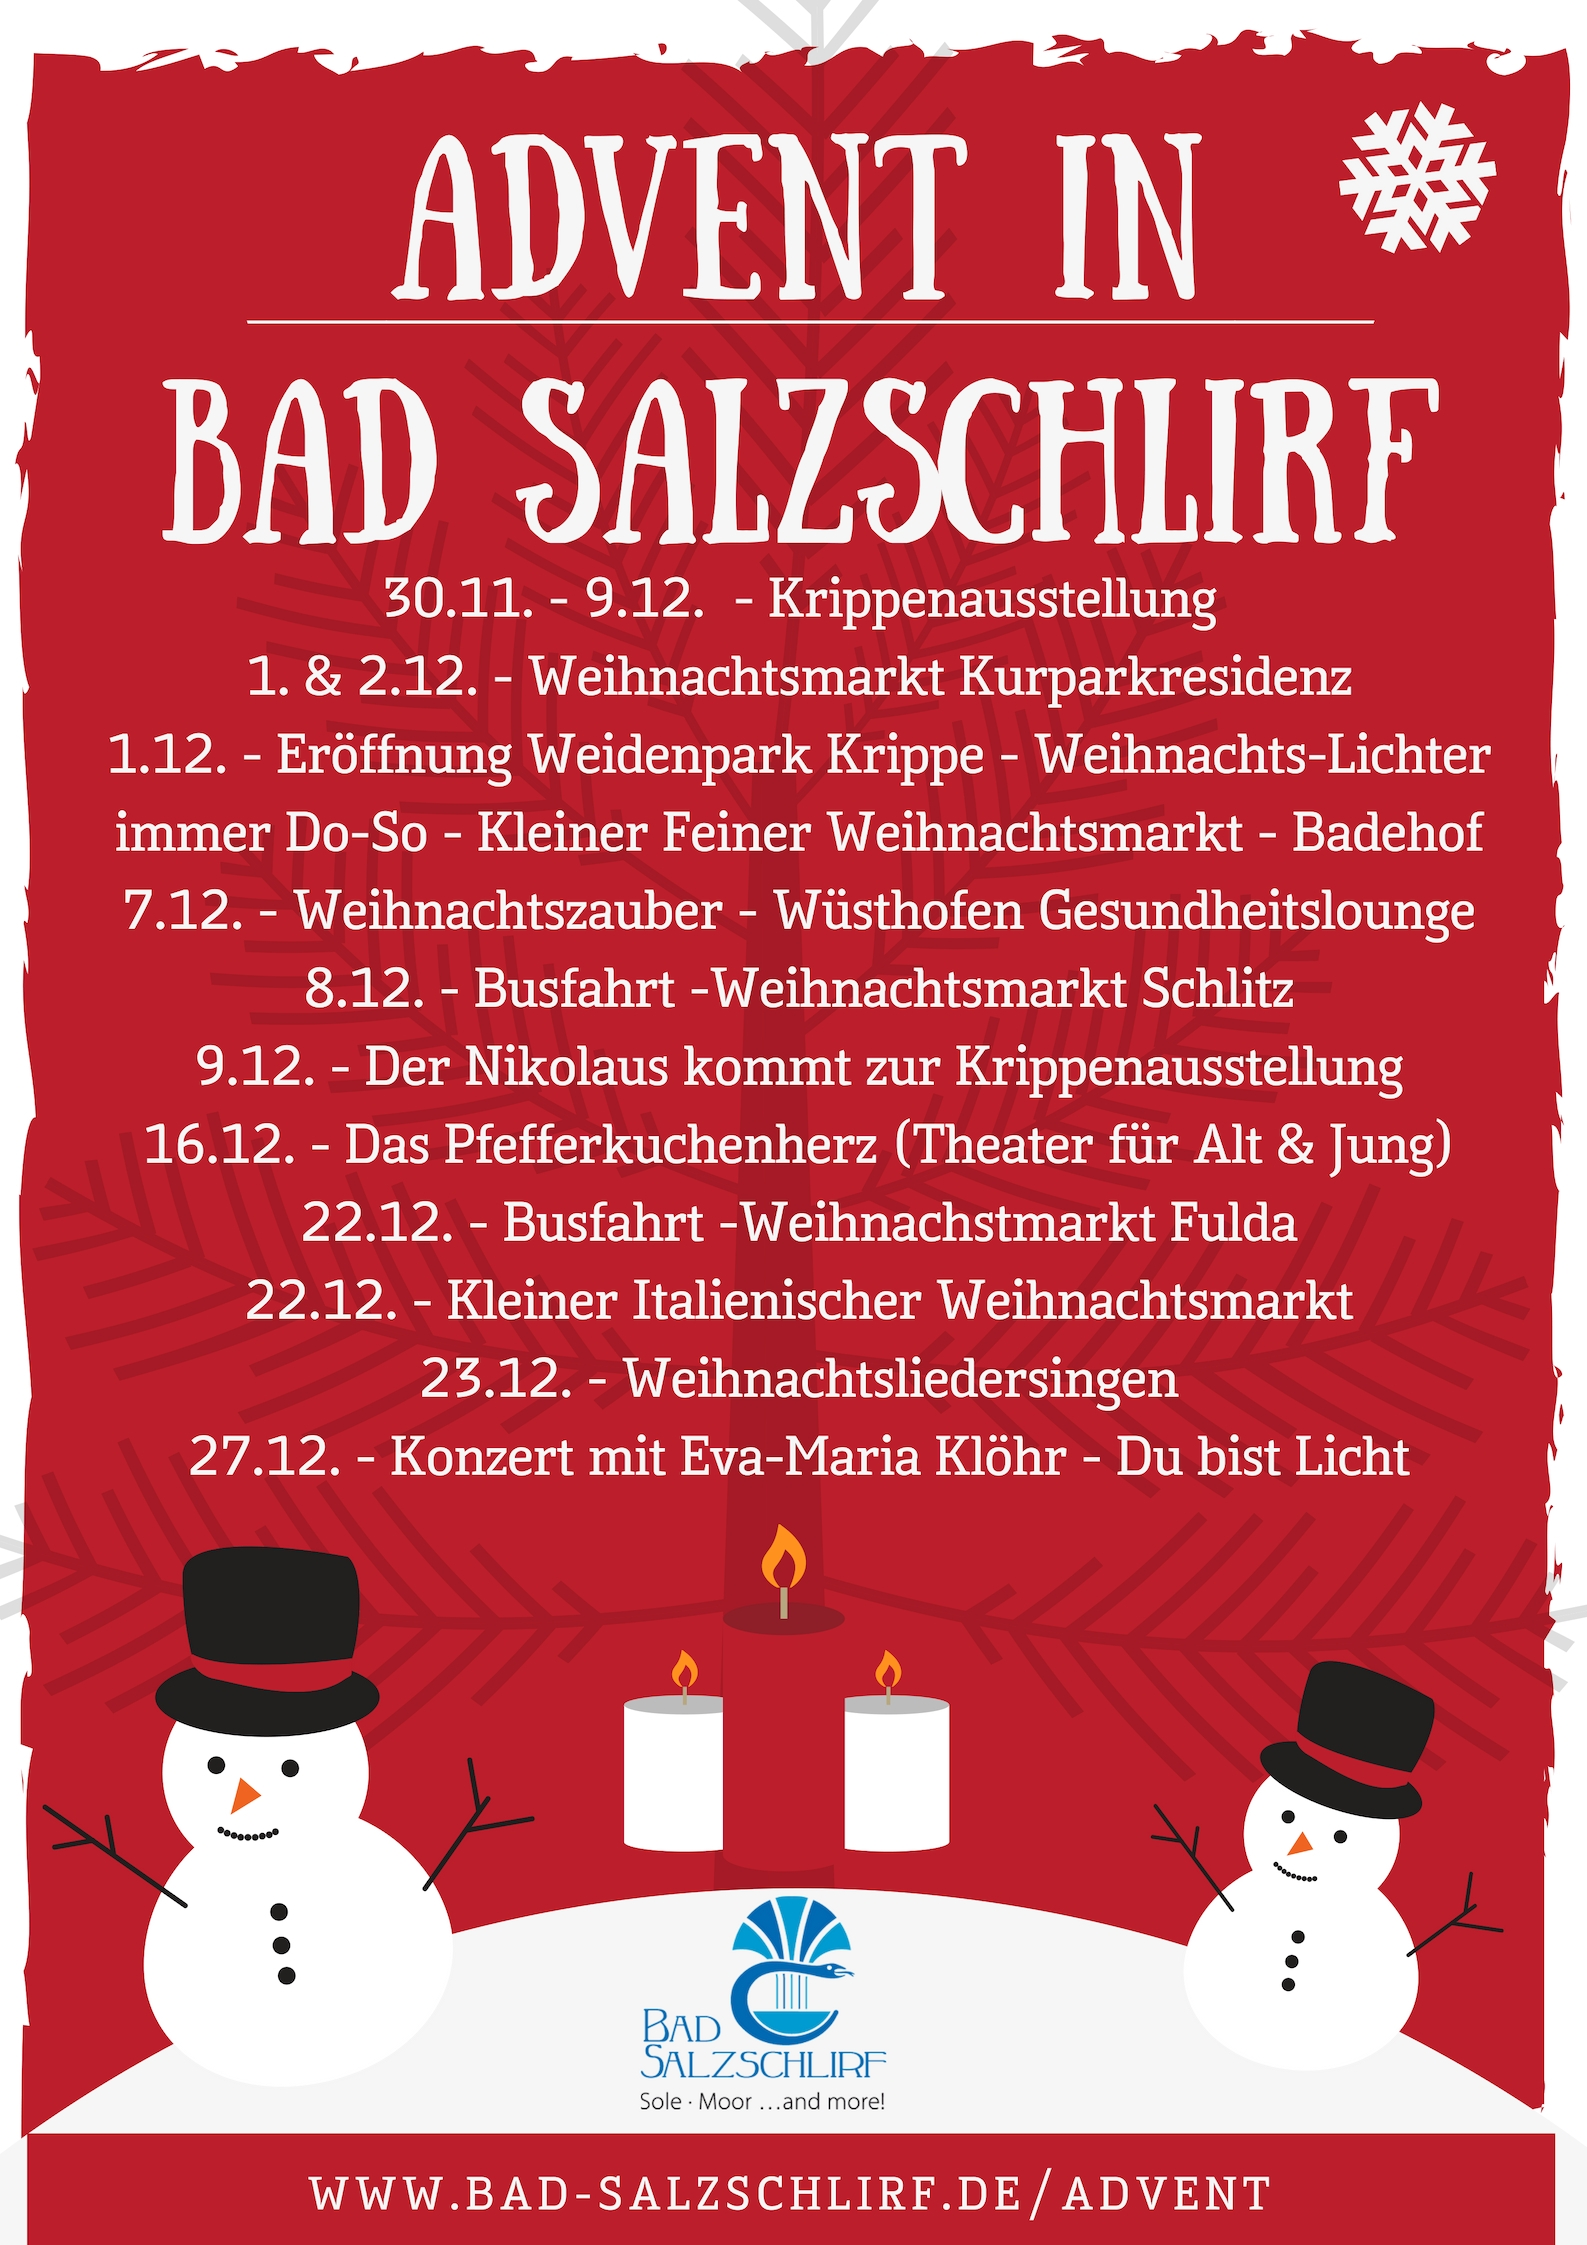 Advent in Bad Salzschlirf 2018.jpg